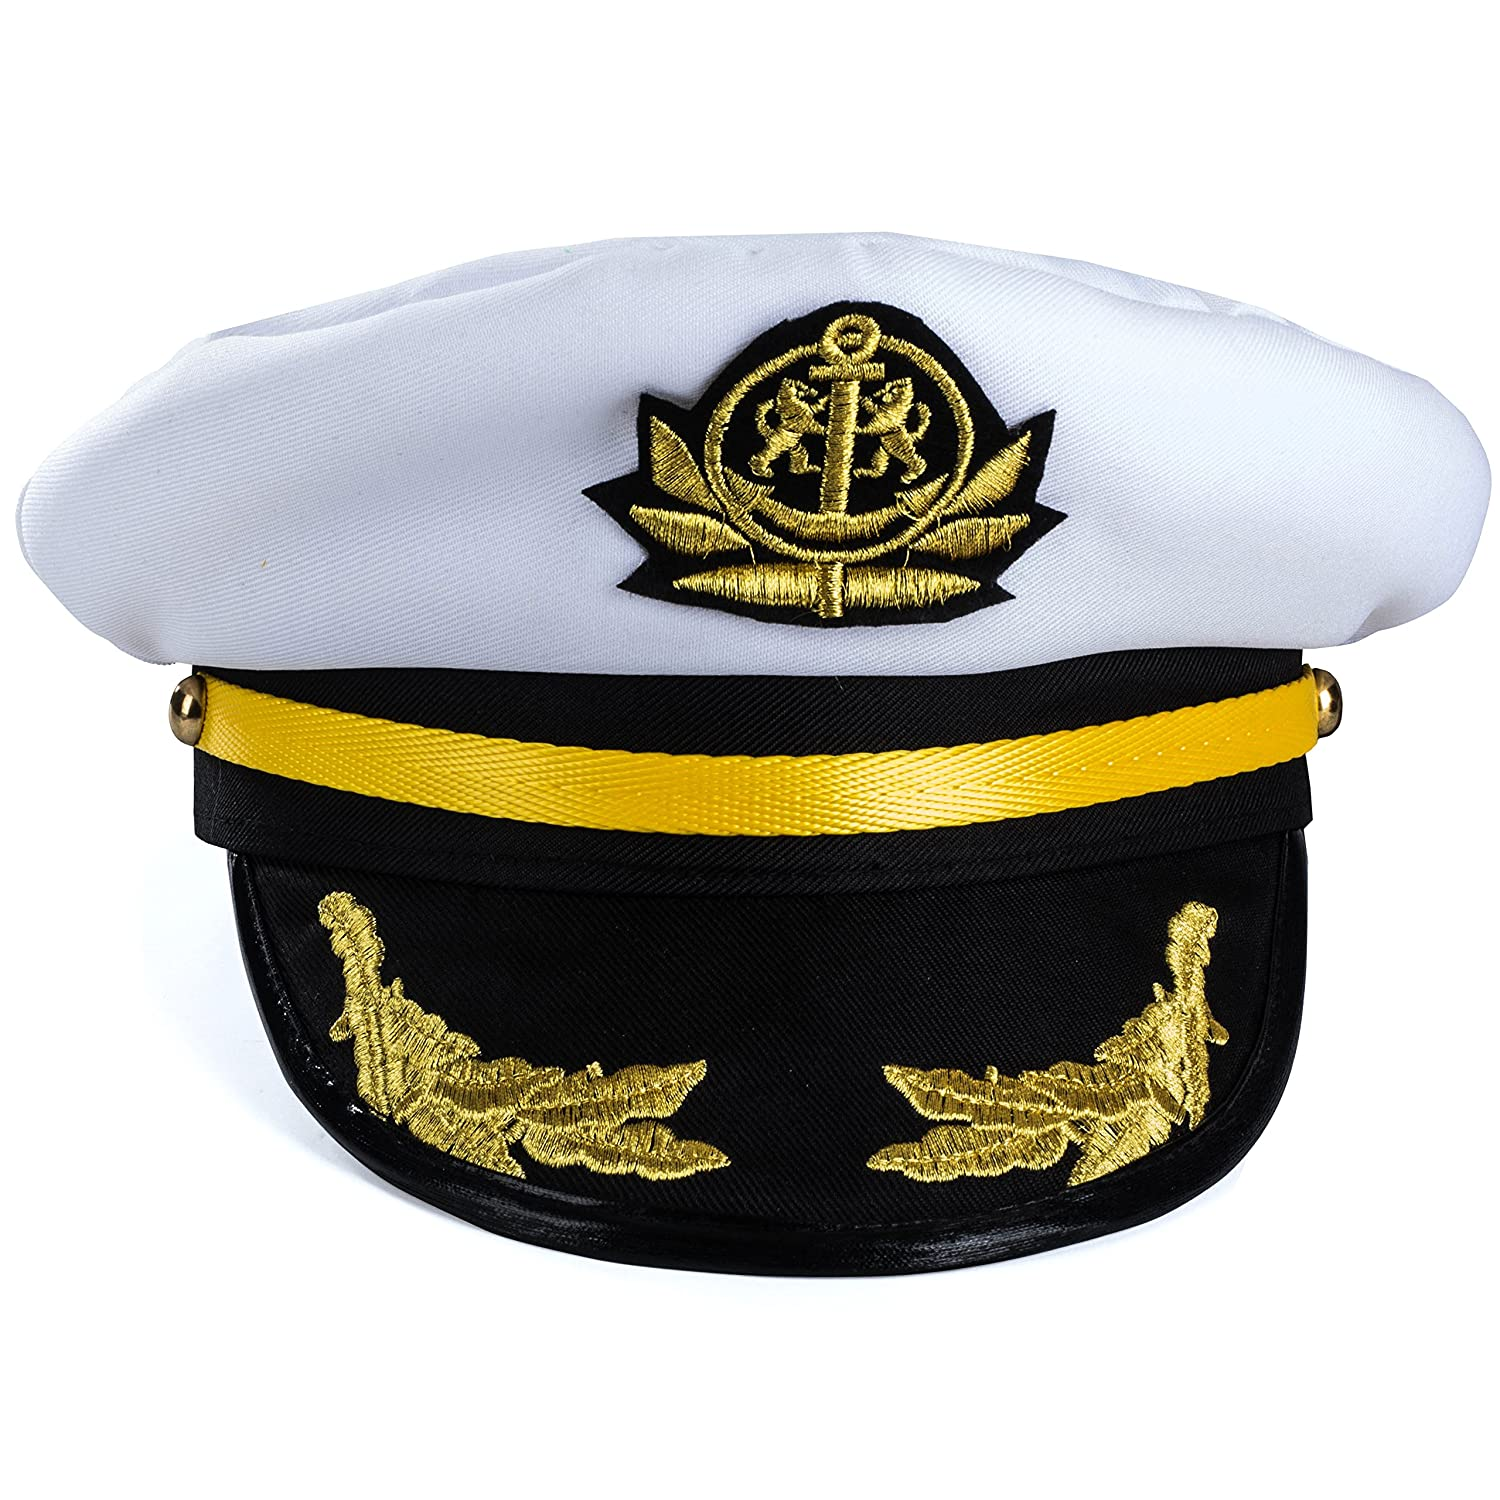 Yacht Captain Hat Navy Marine Hat Costume Accessories by Funny Party Hats Skipper Hat Sailor Cap